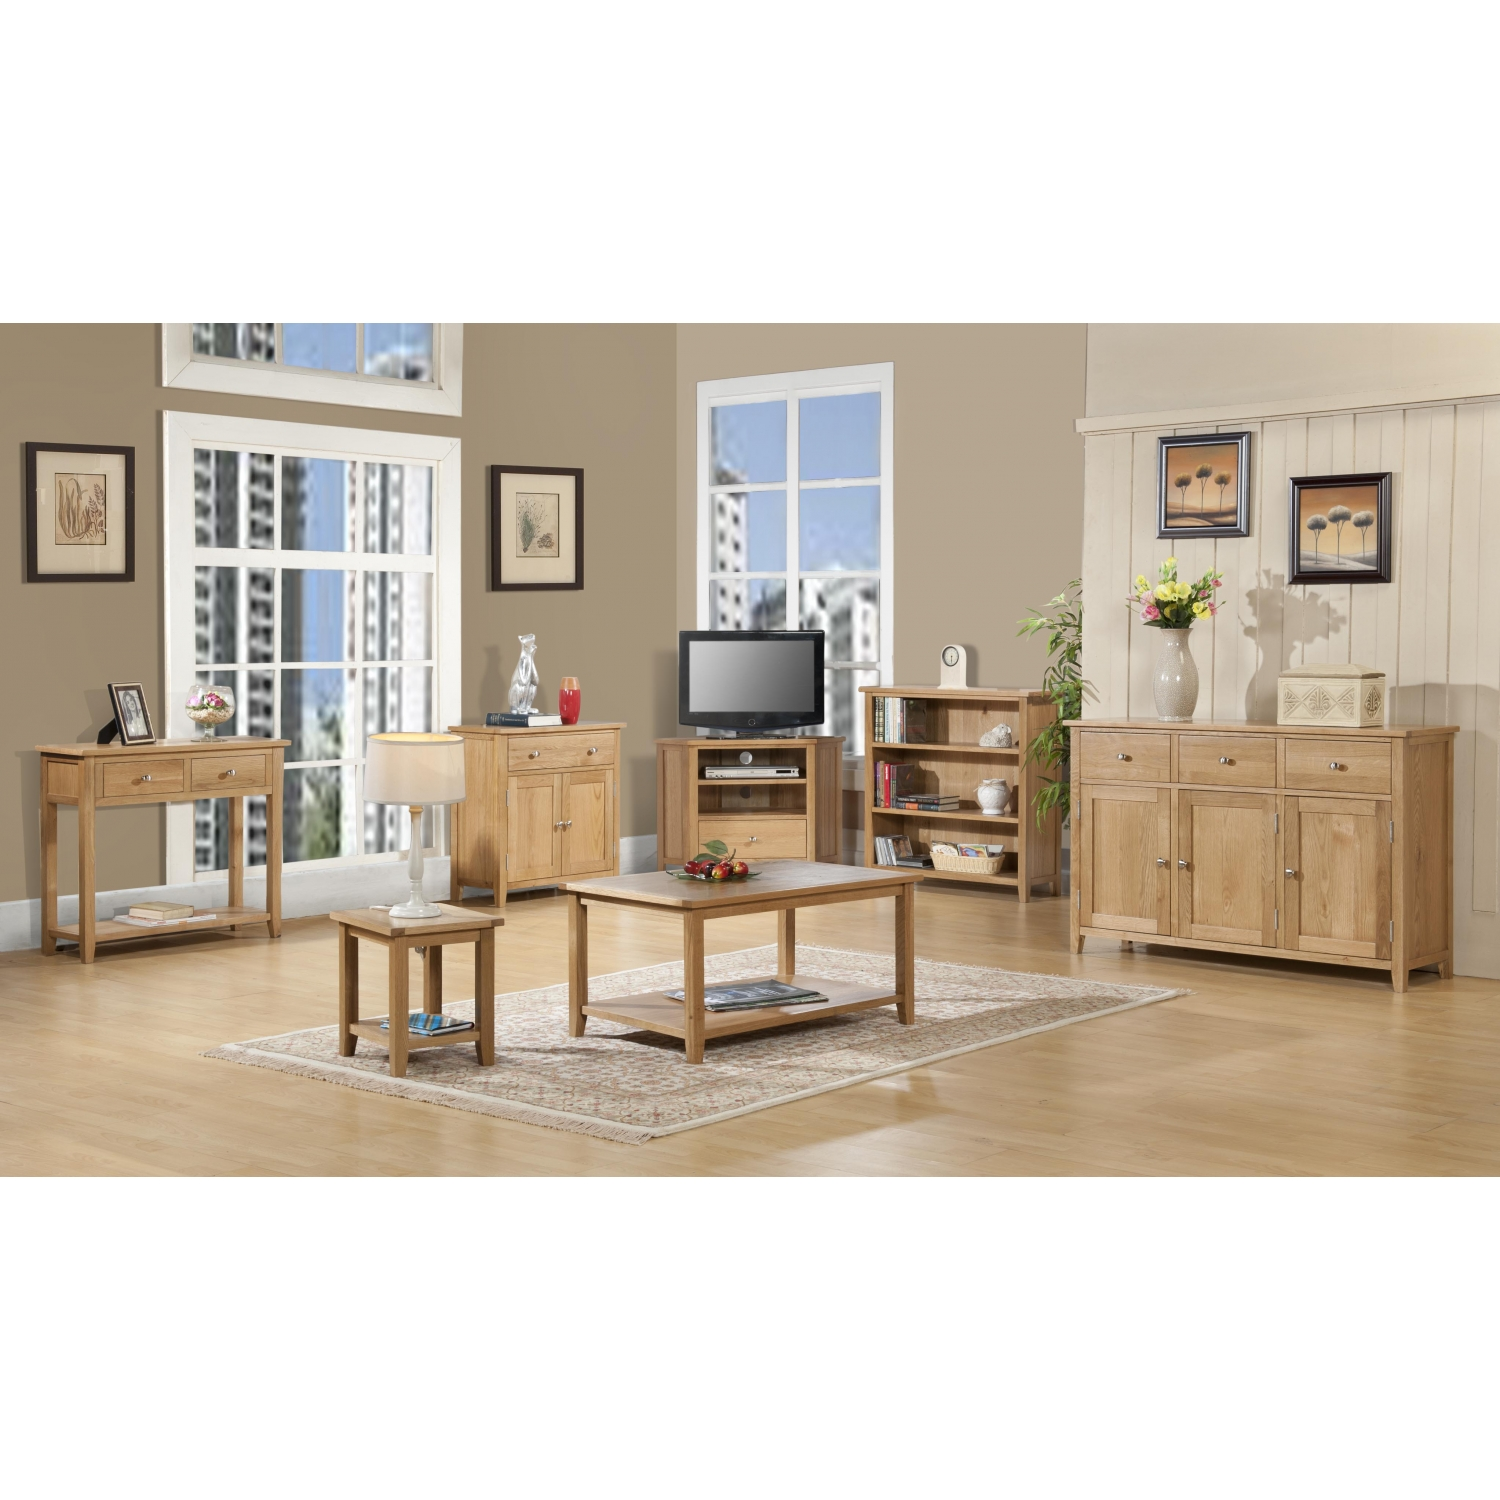 Easton oak living room furniture corner tv cabinet stand - Corner tables for living room online ...